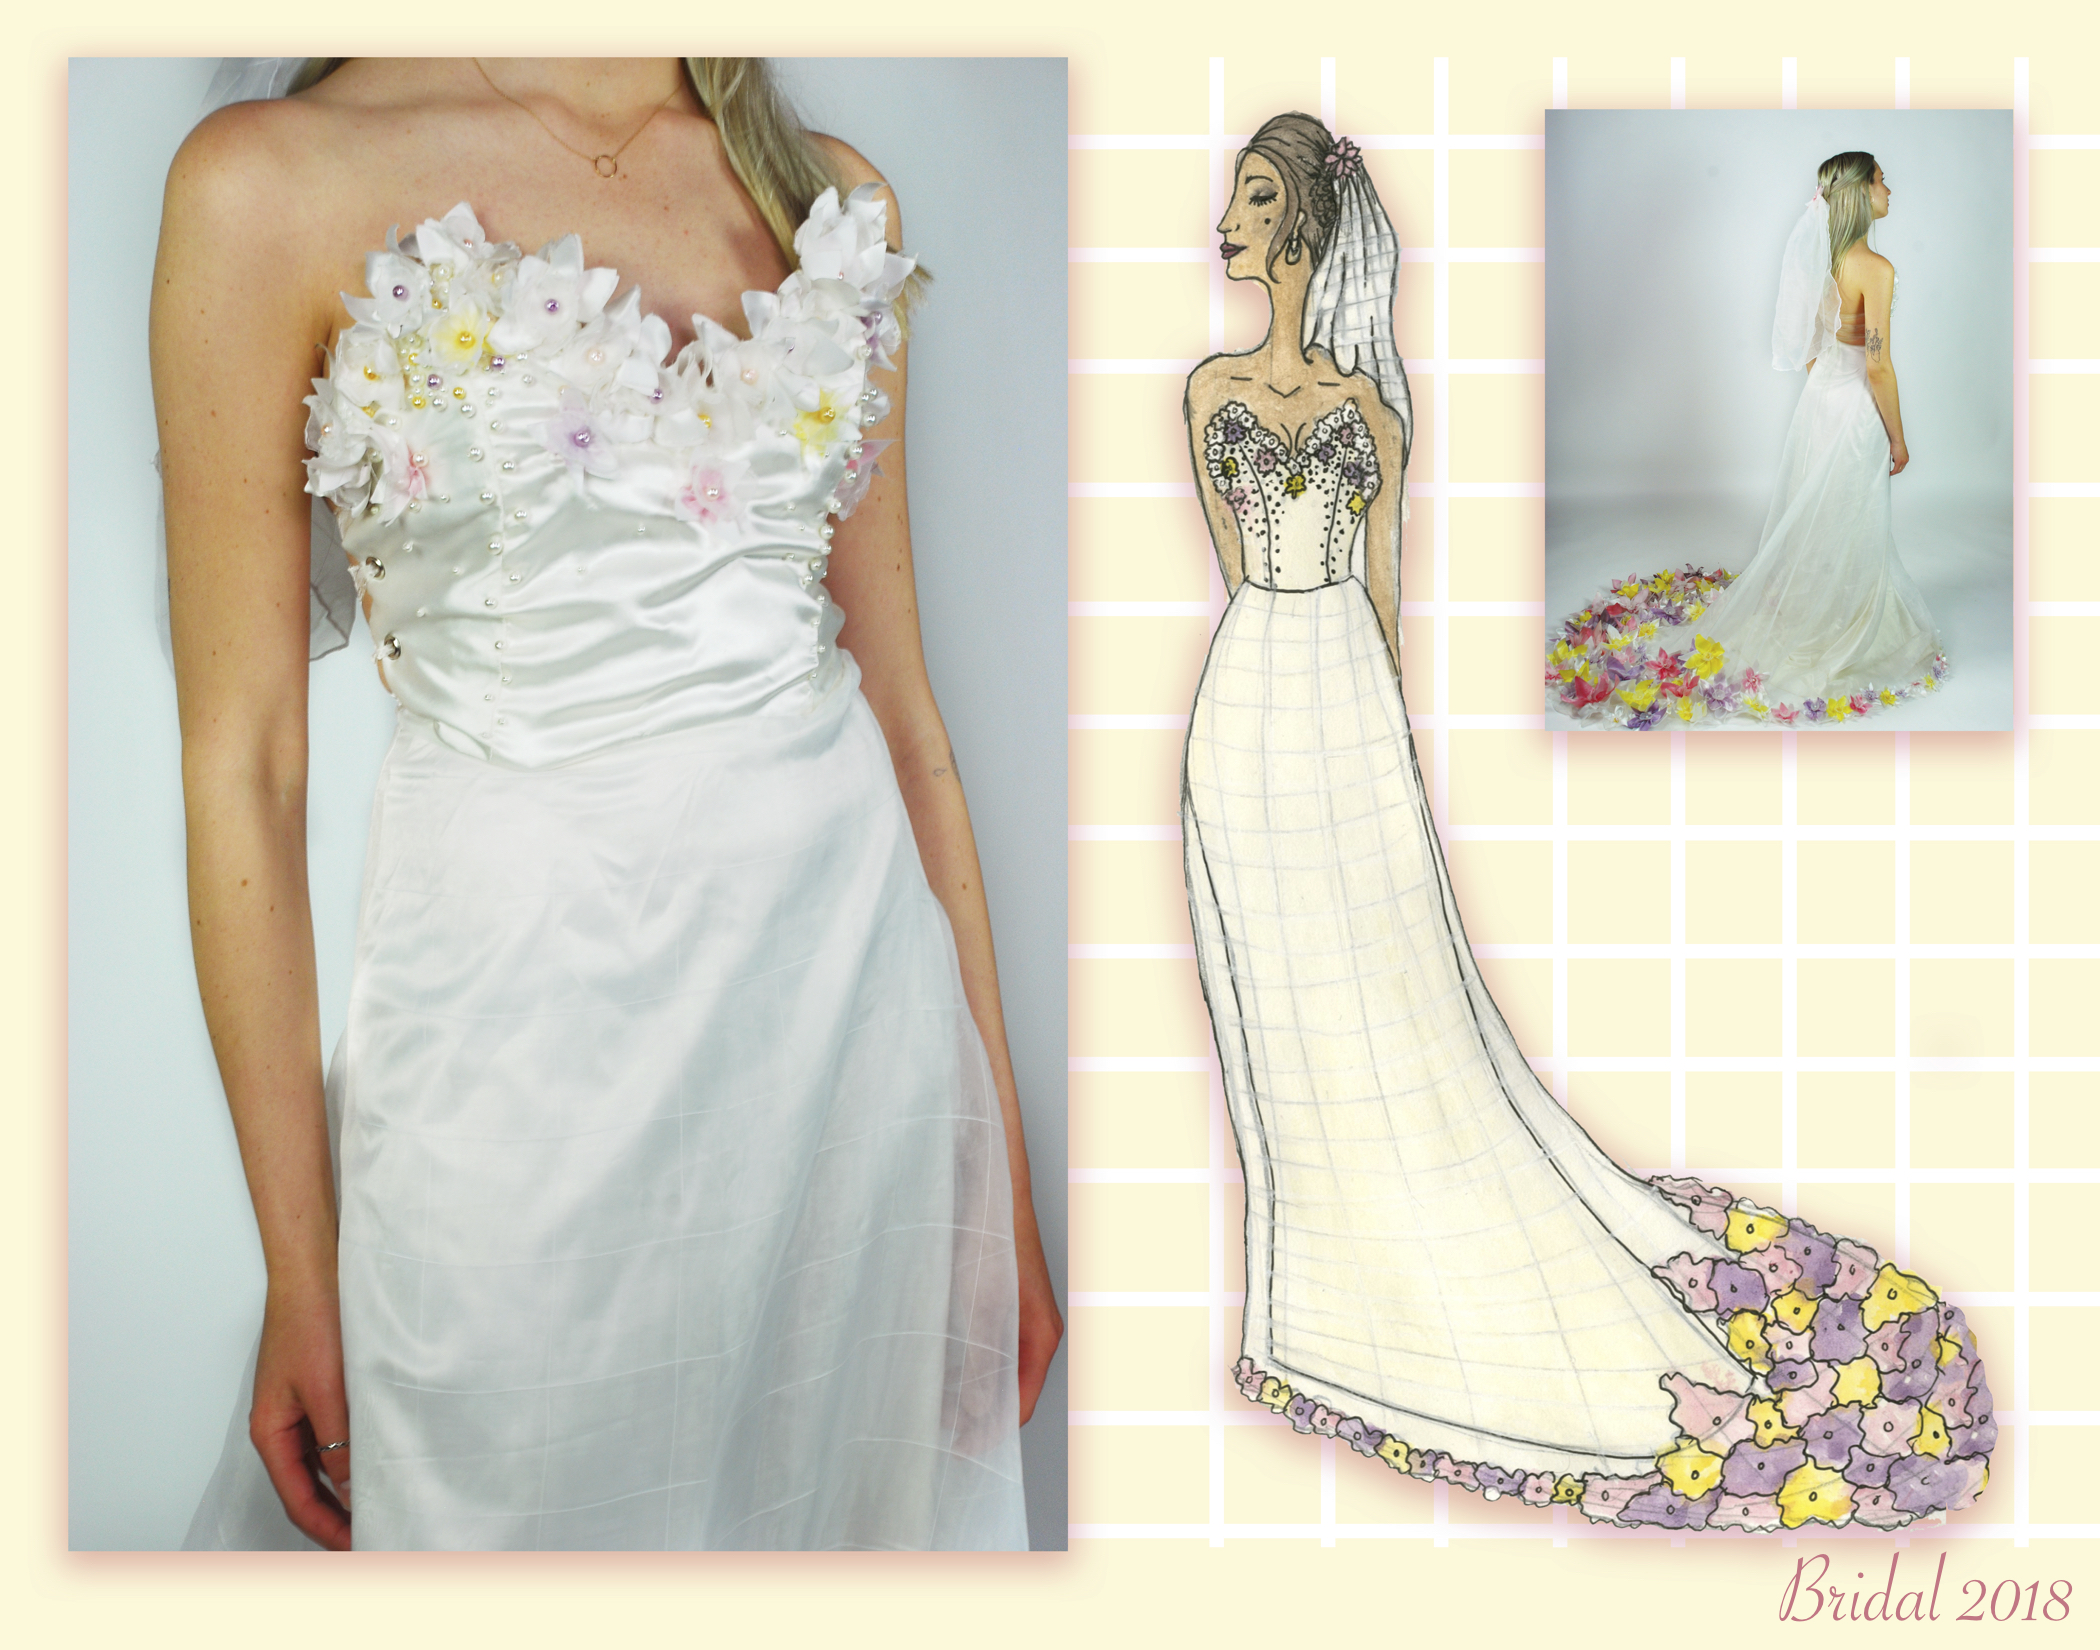 Bridal spread page 1.jpg